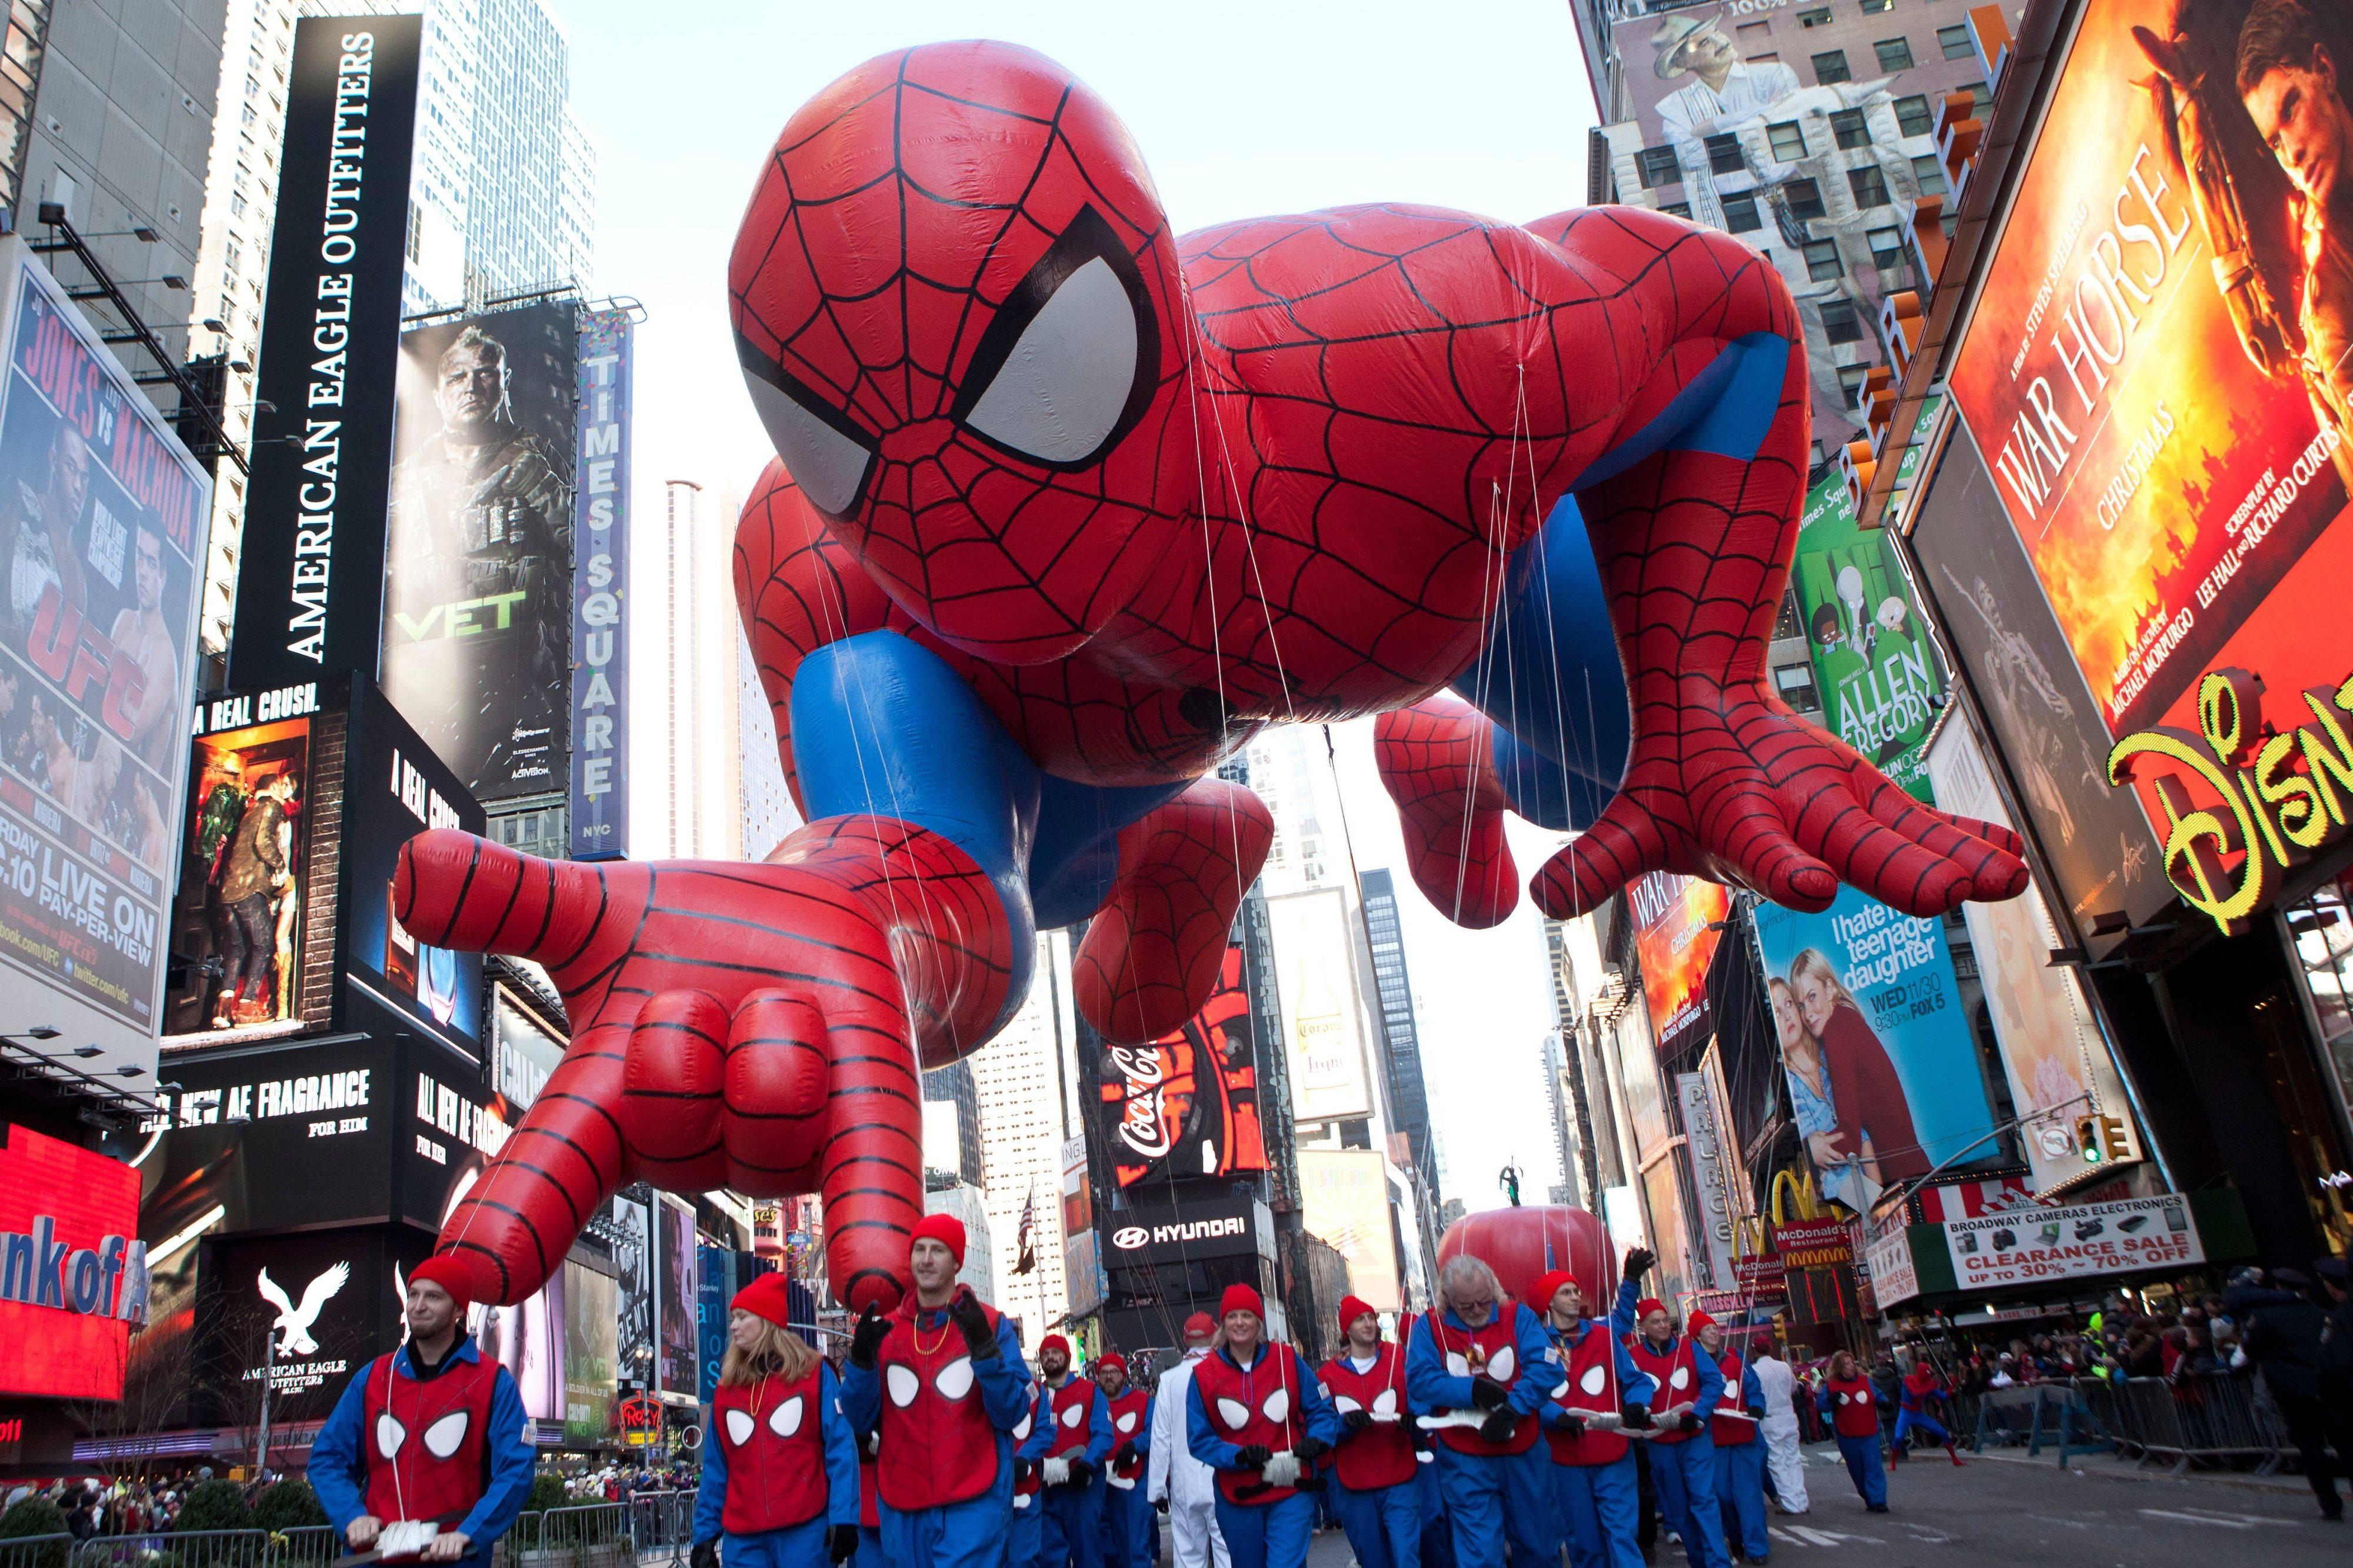 "The ""Spiderman"" float is seen during the Macy's Thanksgiving Day Parade in Times Square in New York on Thursday, Nov. 24, 2011. The parade premiered in 1924, this is its 85th year."